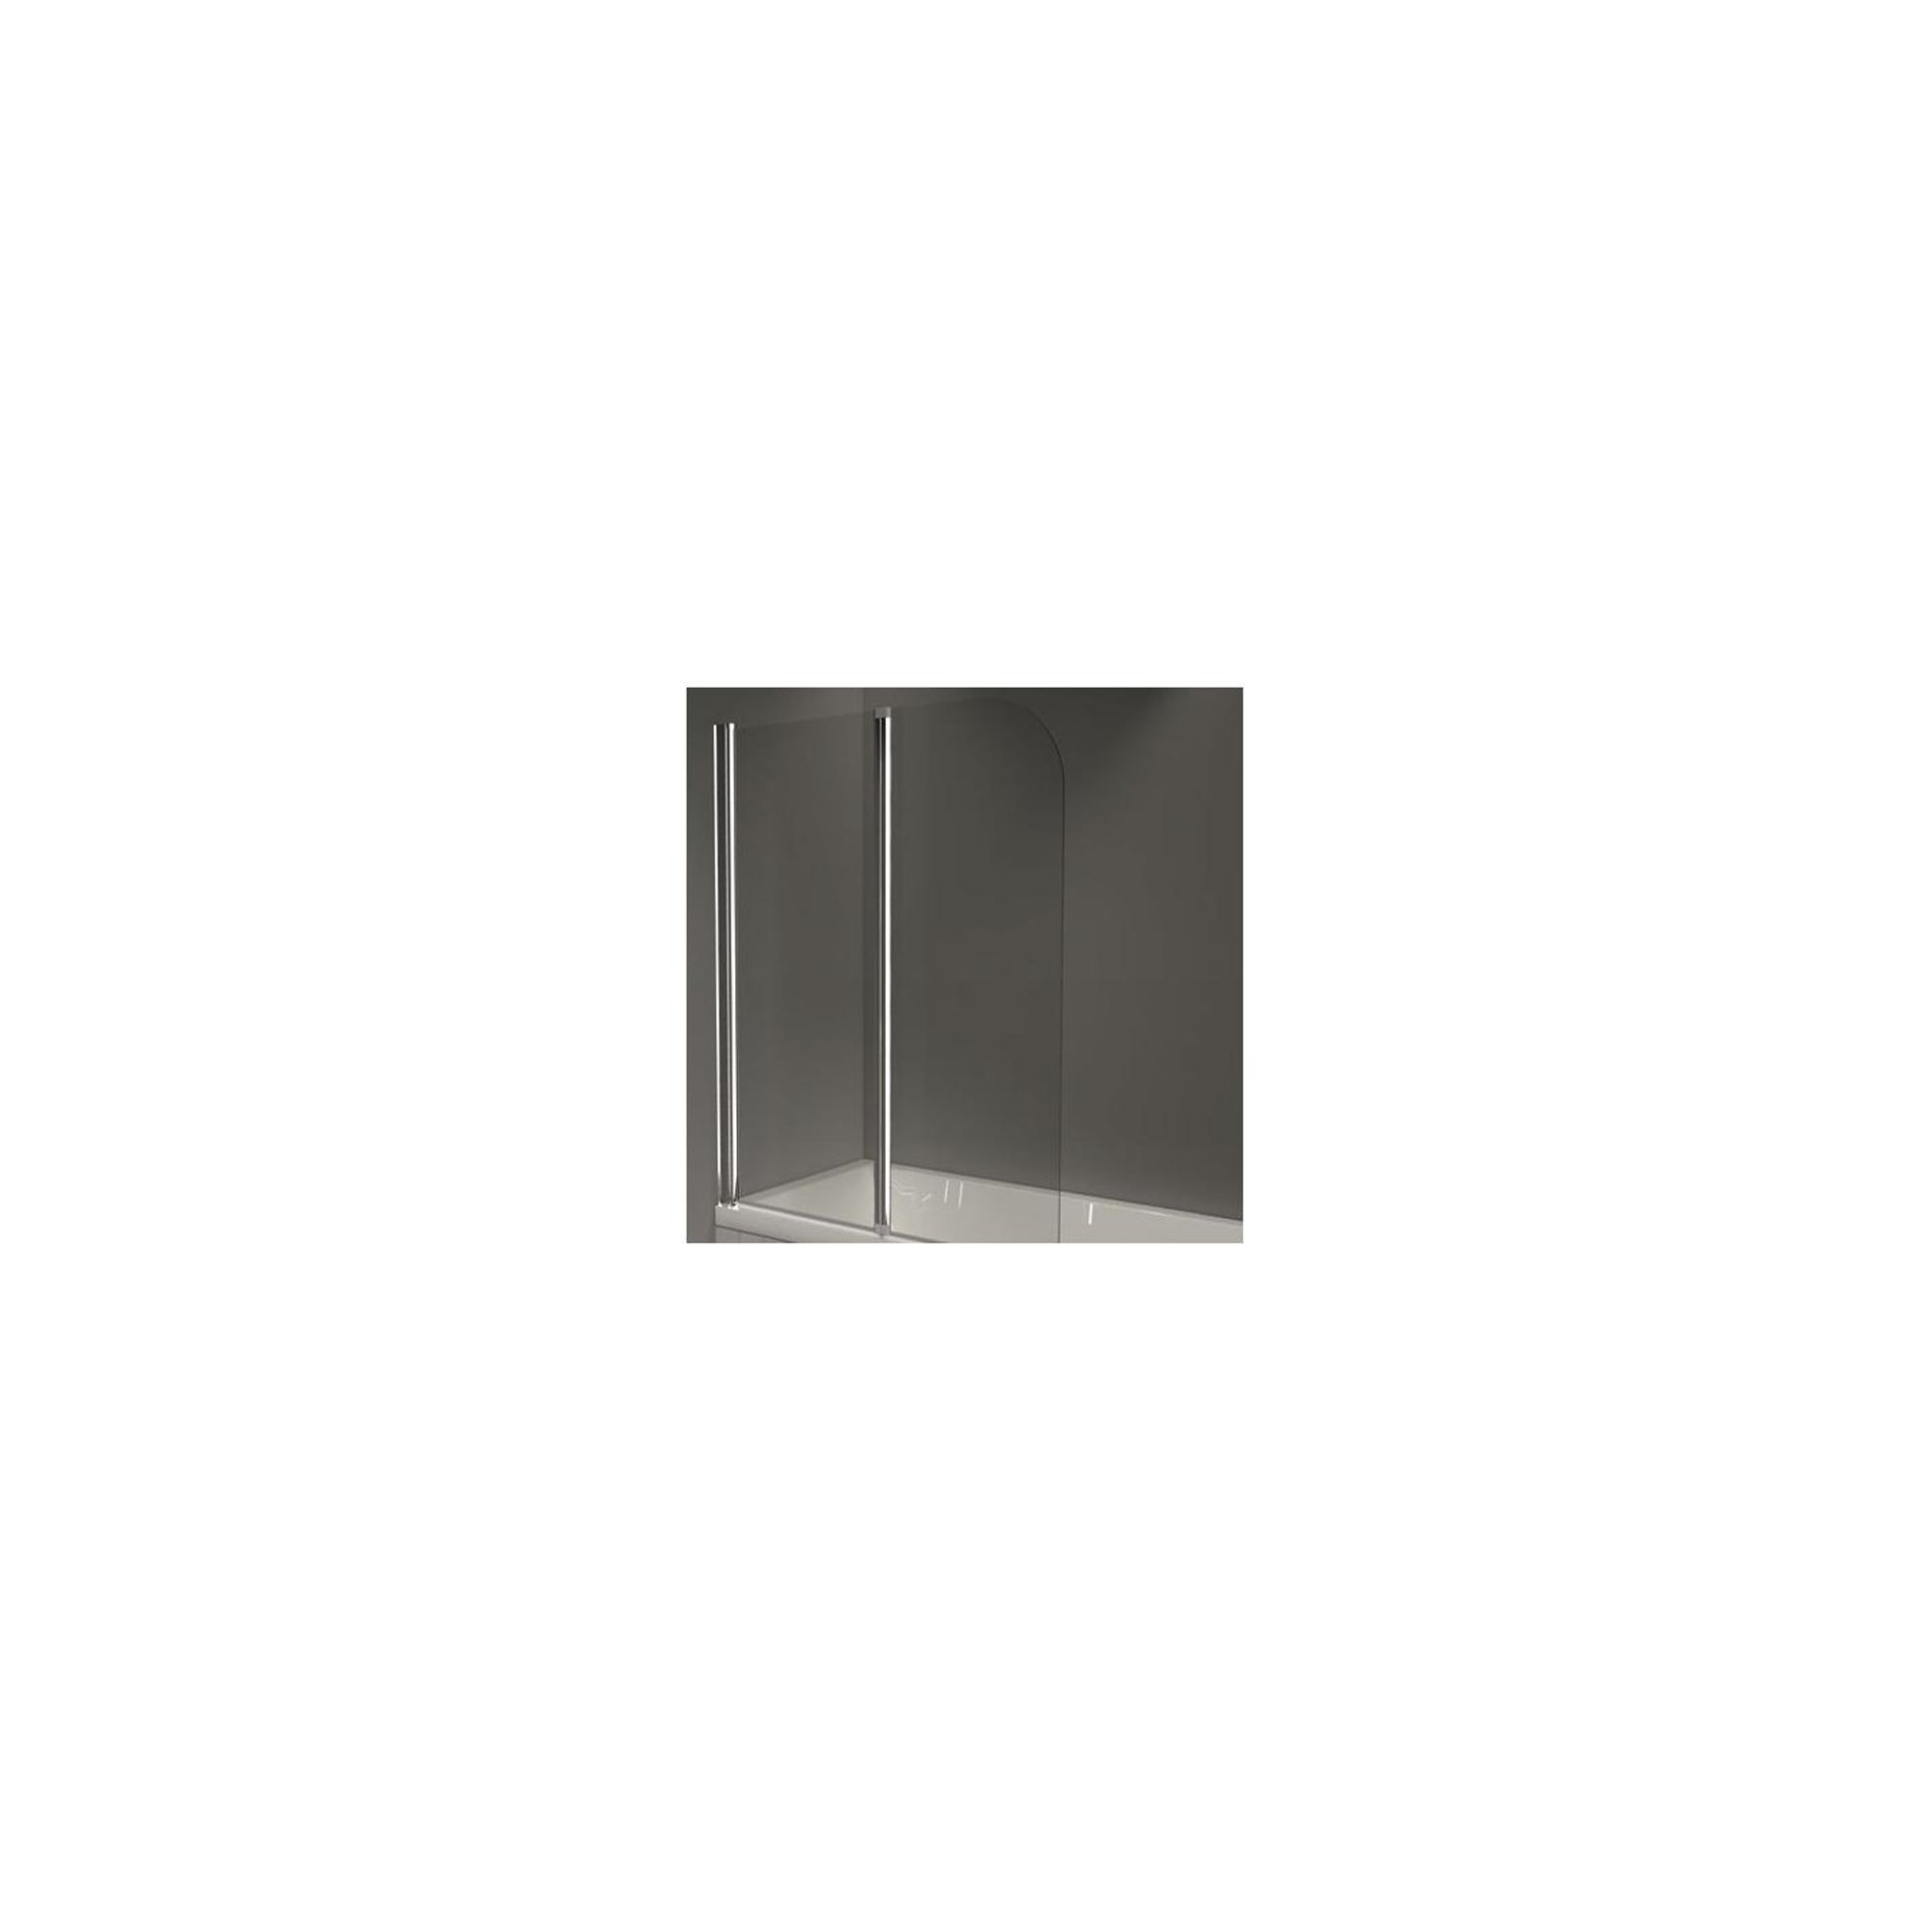 Merlyn OBS Double Folding Round Top Bath Screen, 1500mm High x 1200mm Wide, Left Handed, 6mm Glass at Tesco Direct